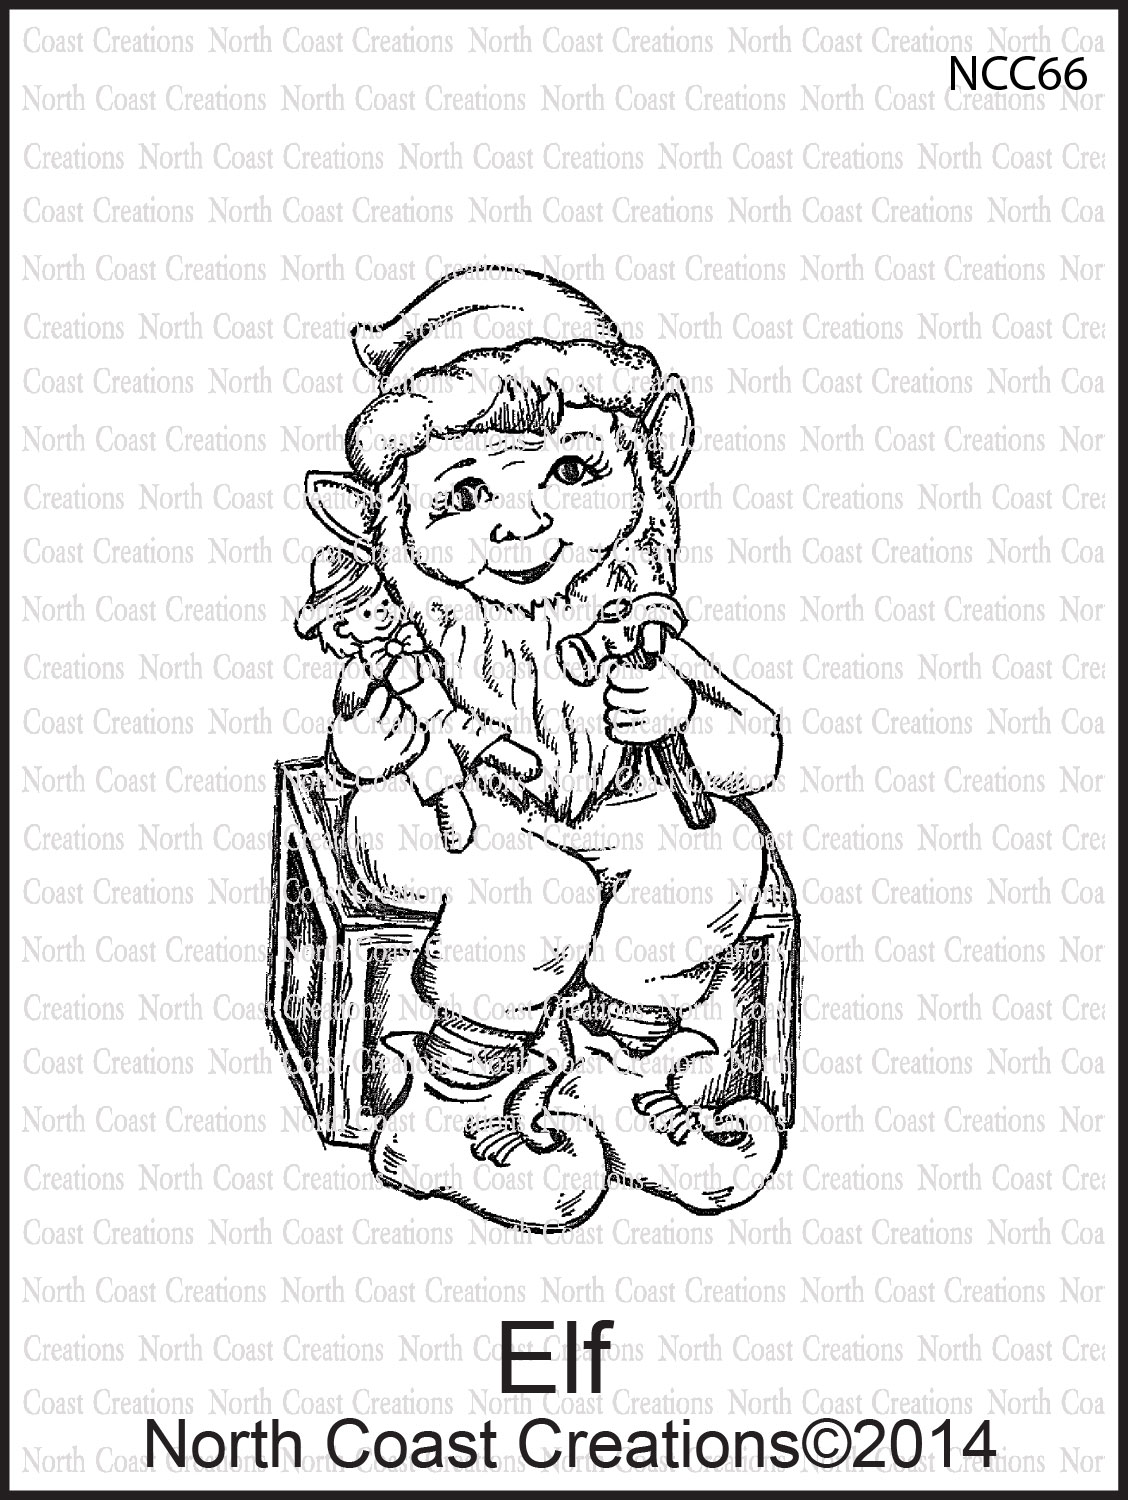 Stamps - North Coast Creations Elf